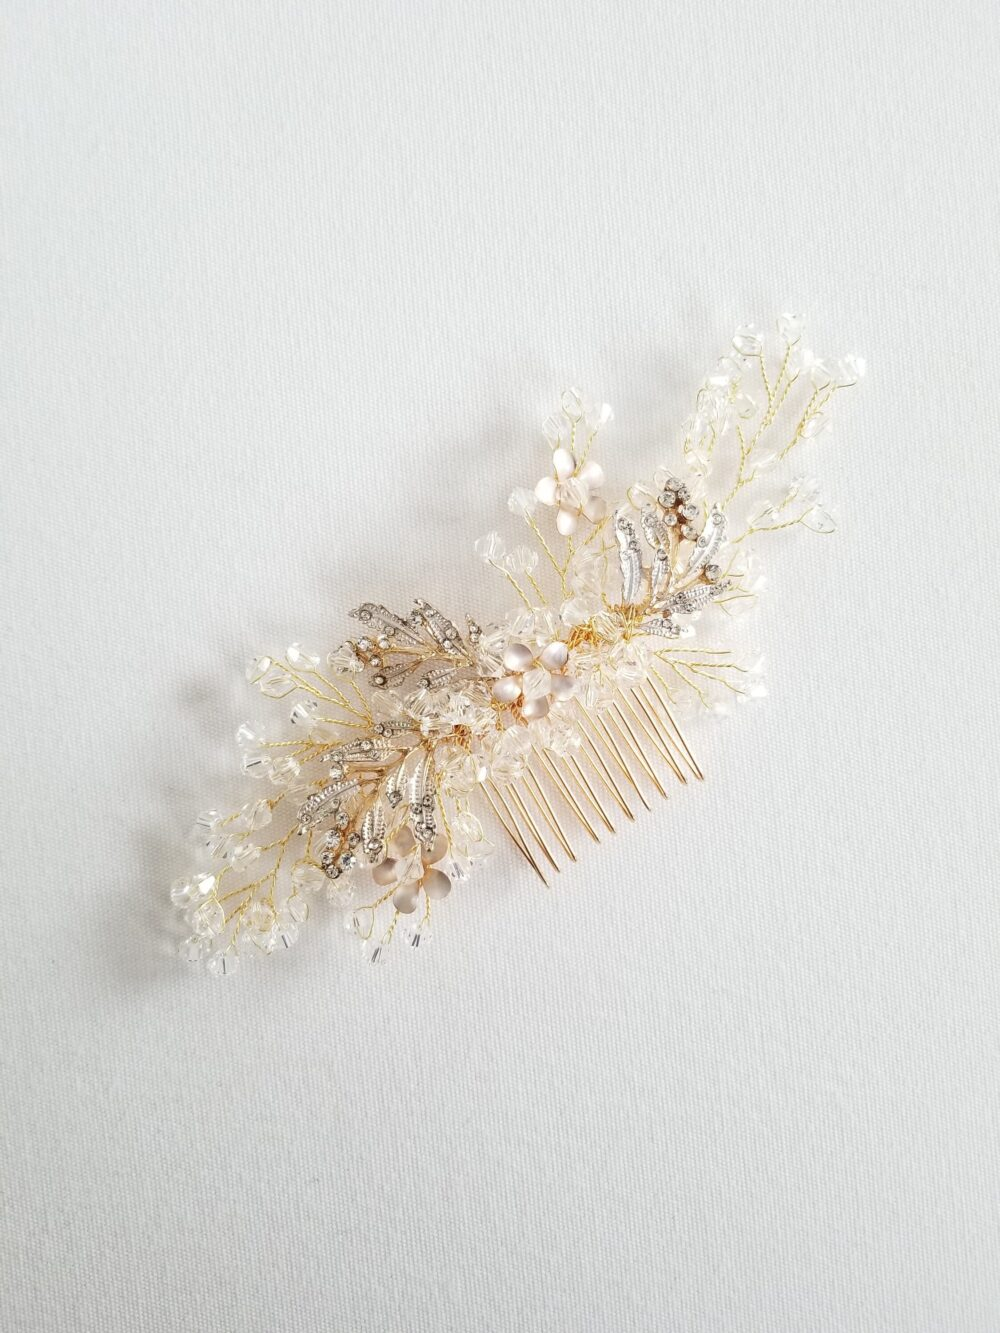 Crystal Bridal Comb, Gold Wedding Hair Floral Comb For Bride